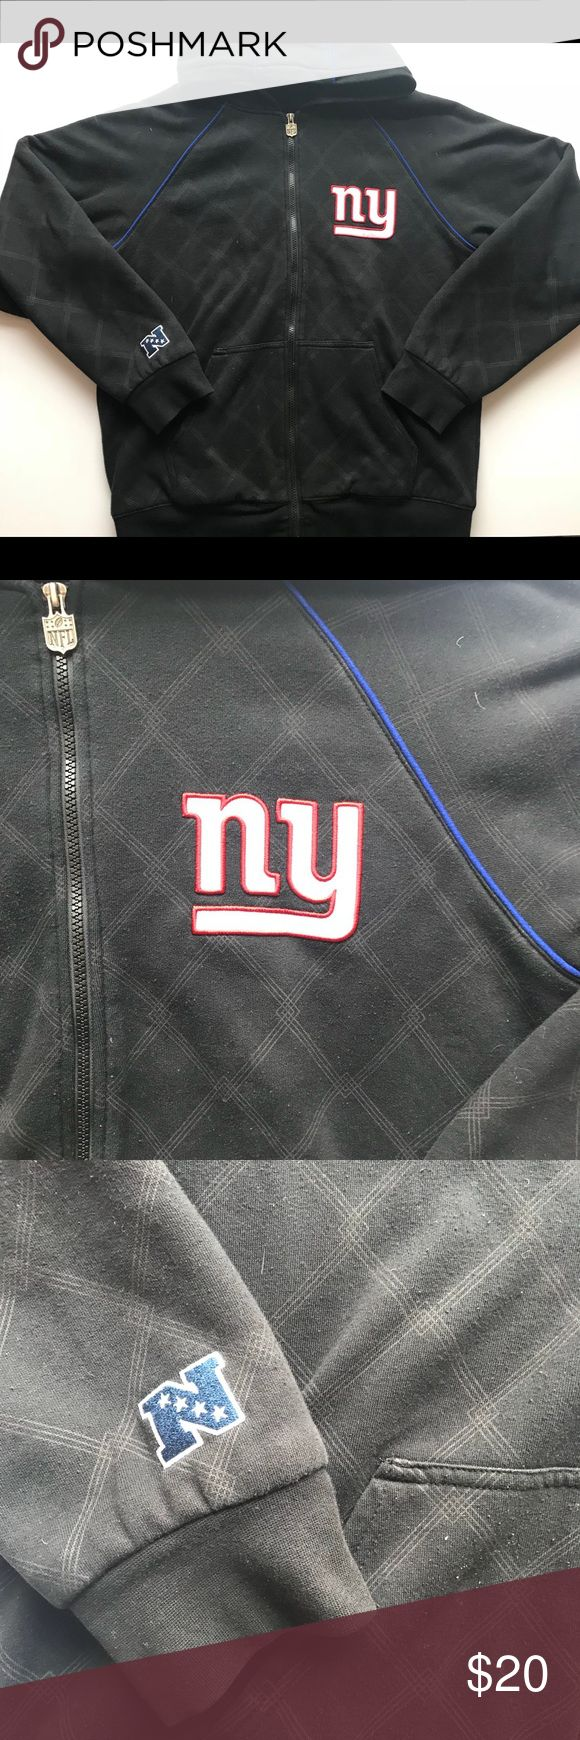 New York Giants NFL Sweatshirt Item is in fantastic condition and ready for immediate use. It's a heavy Sweatshirt so it's perfect for the cold weather. Let me know if you have any questions! NFL Shirts Sweatshirts & Hoodies